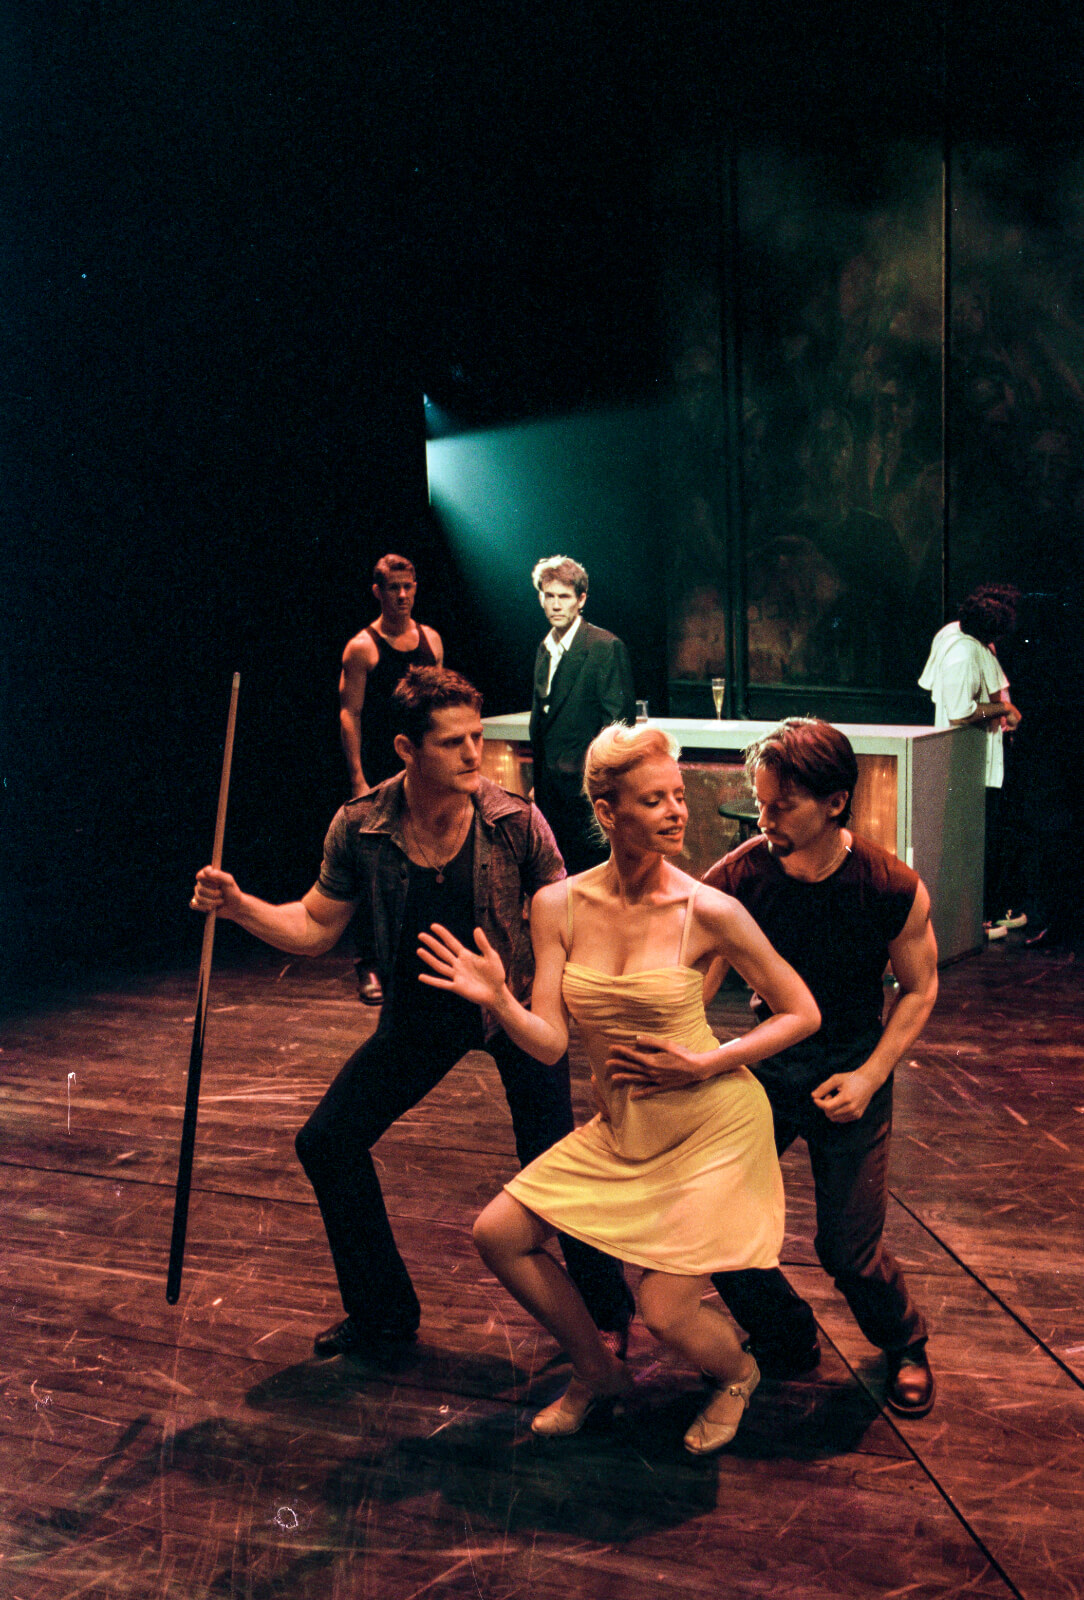 Girl in the Yellow Dress (Deborah Yates) captures the attention of club-goers, Joe (Robert Wersinger) and Johnny (Sean Martin Hingston), as they dance closely behind her.